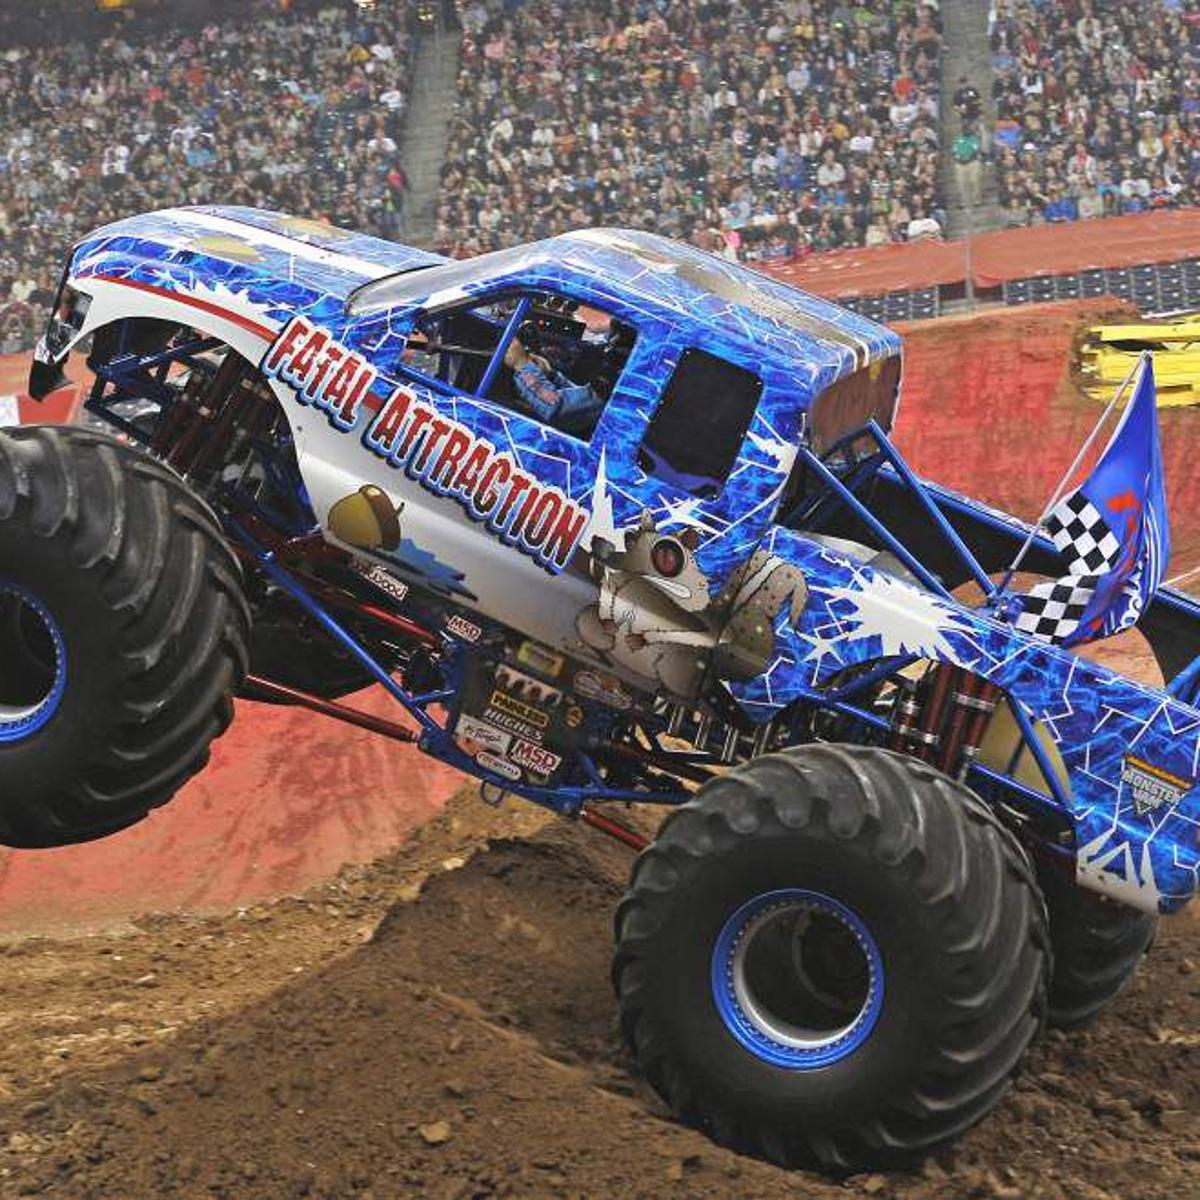 La Monster Truck Driver Jeff Murphy Talks About Life On The Circuit Entertainment Life Theadvocate Com